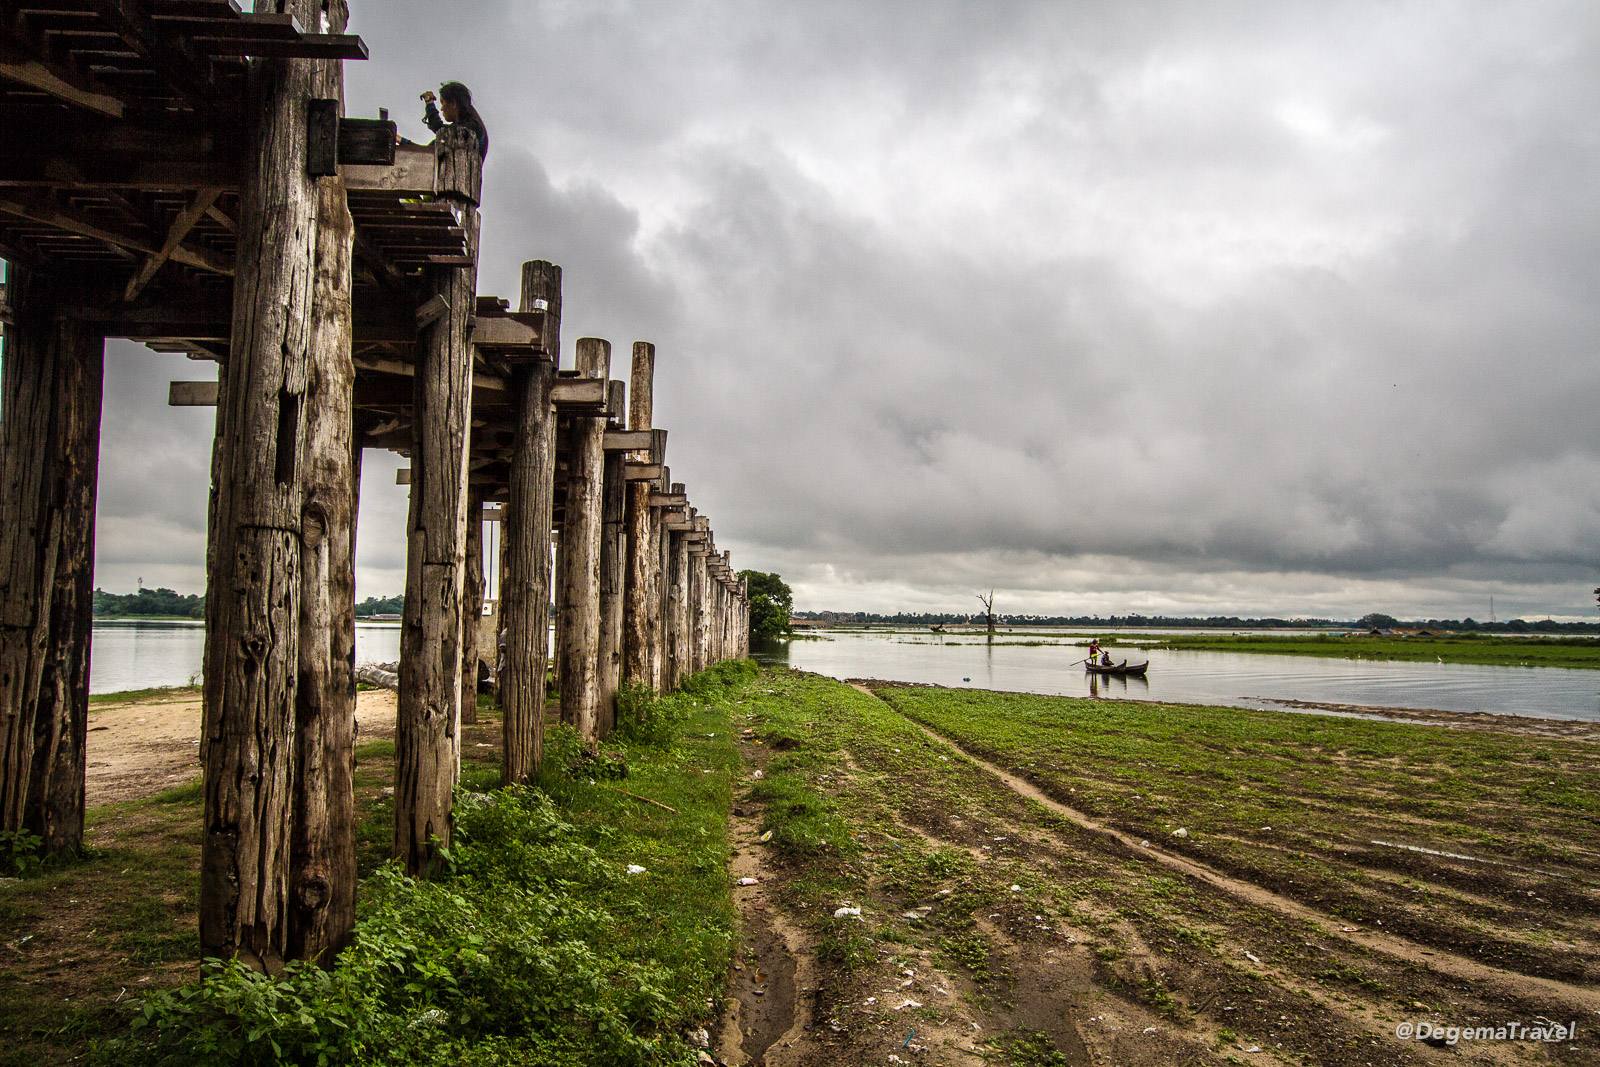 U Bein Bridge near Mandalay, Myanmar